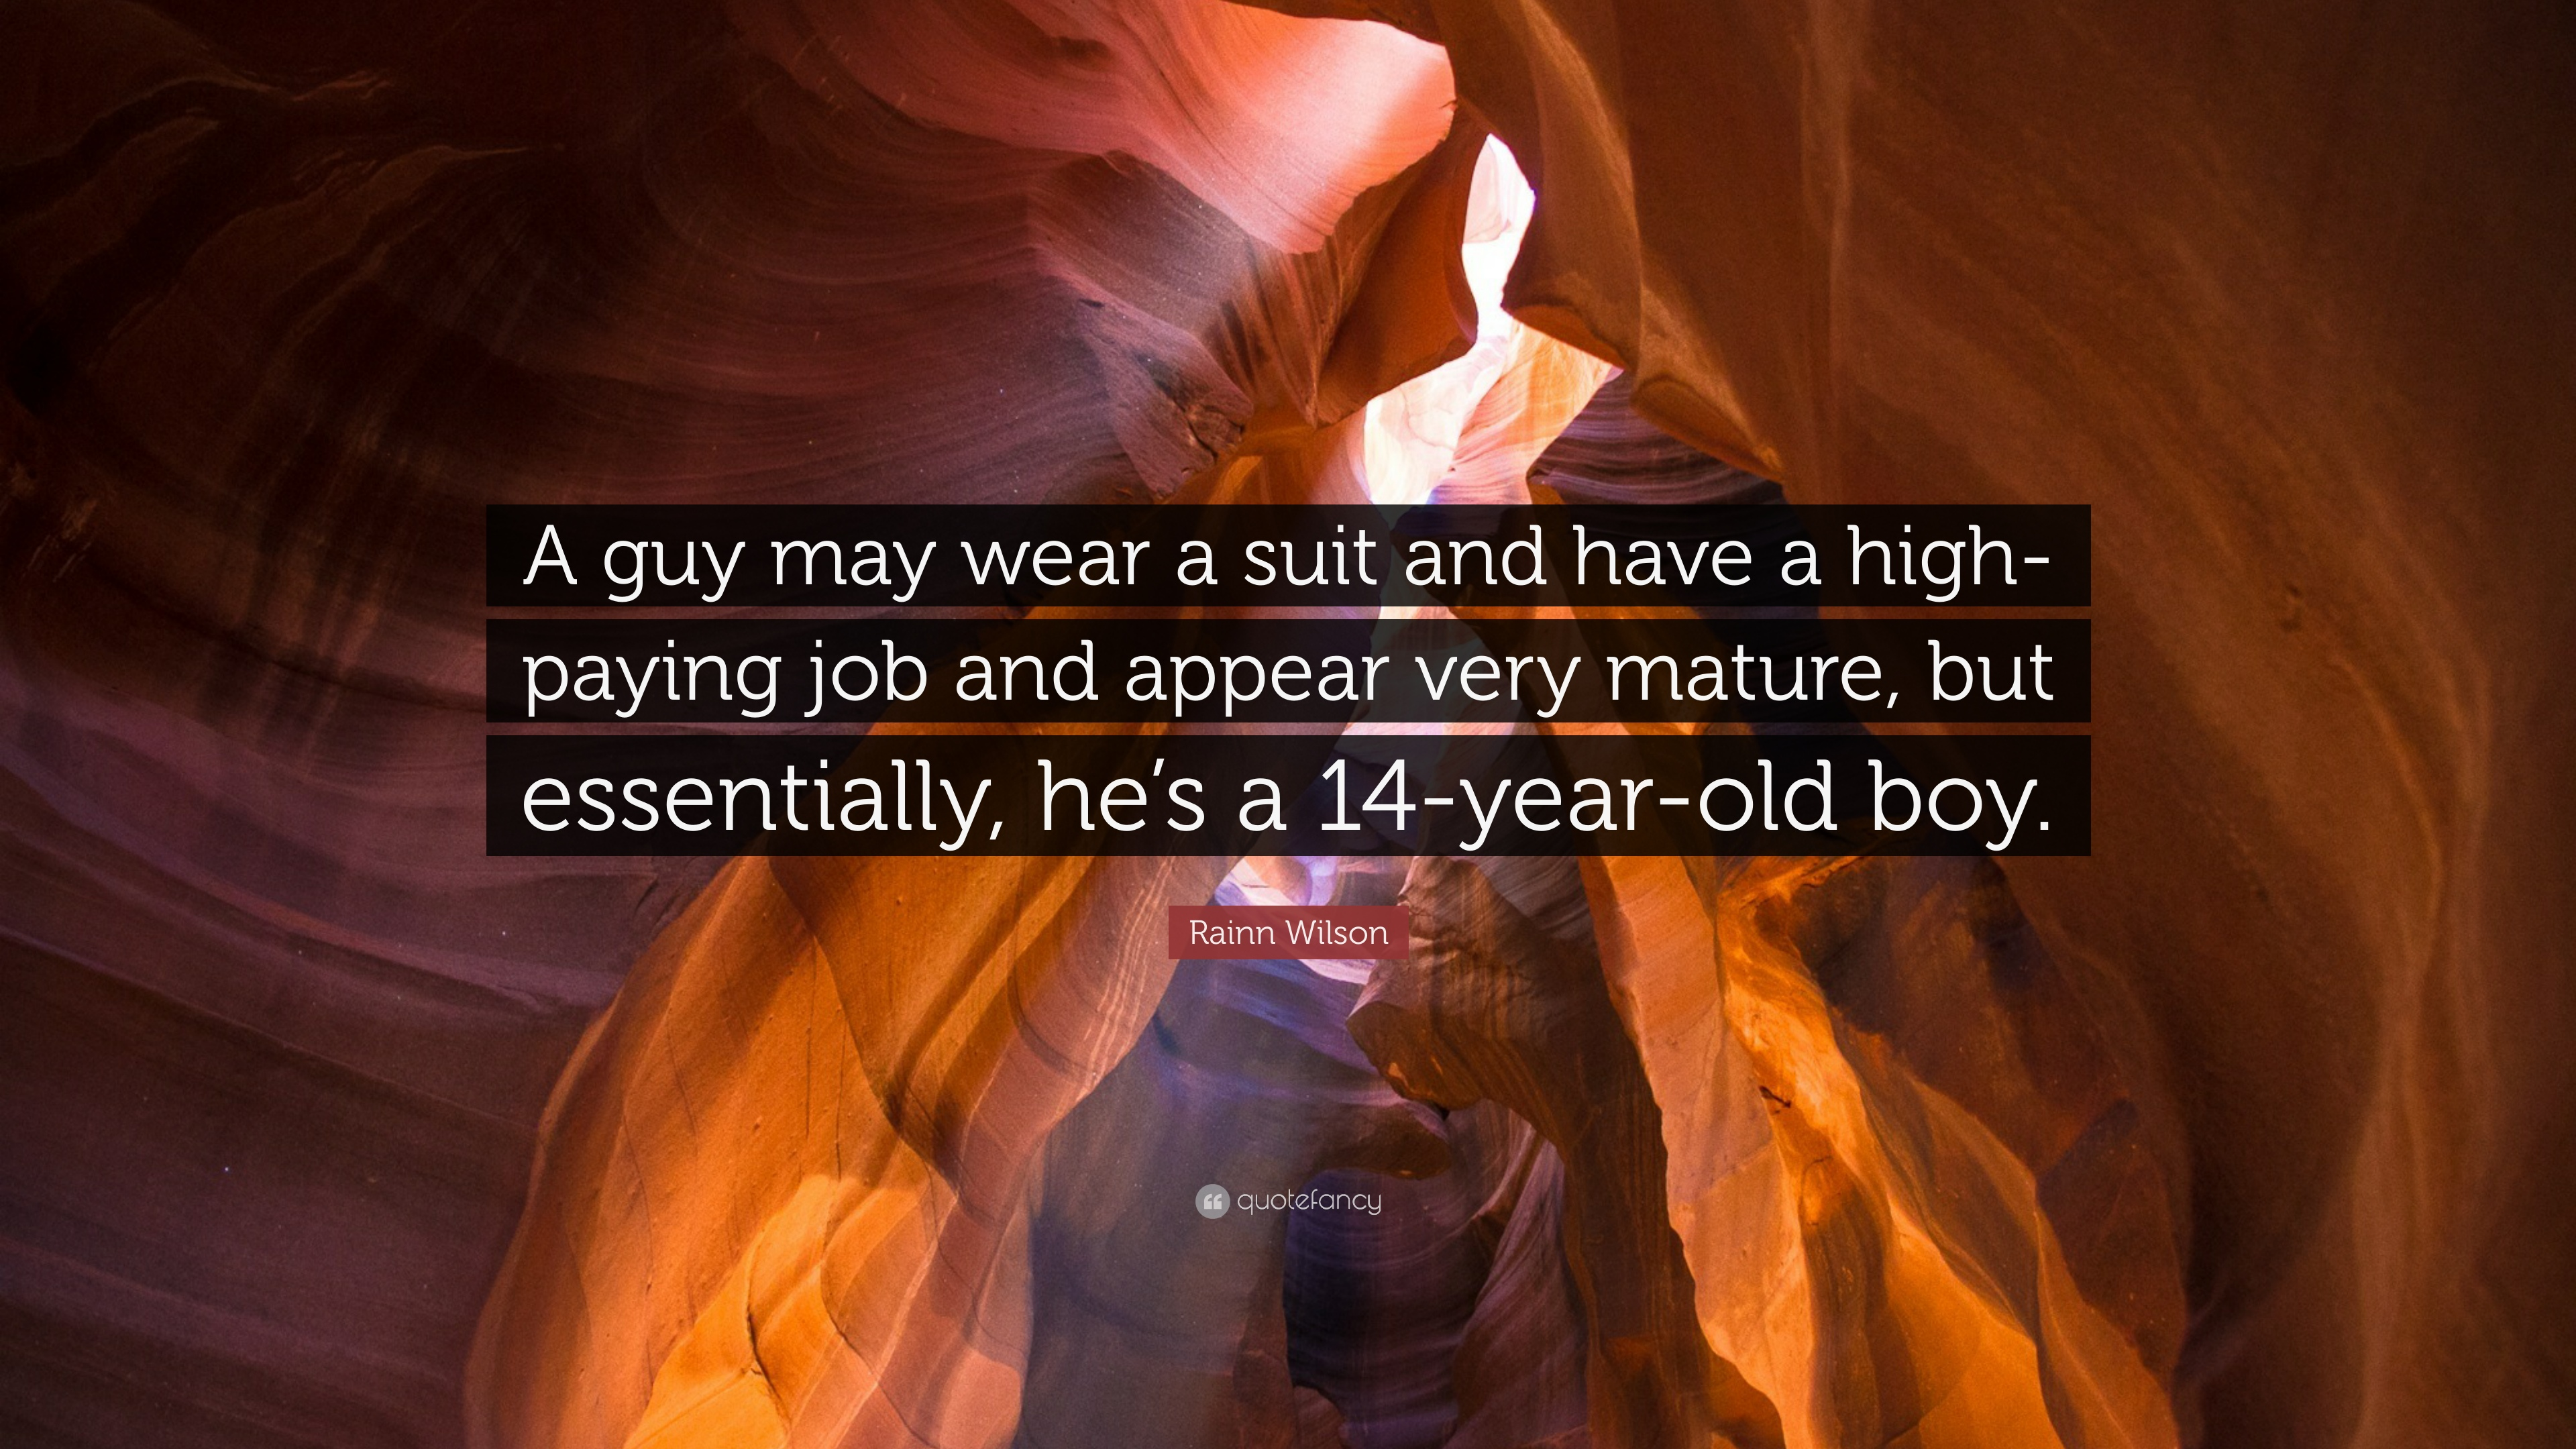 Rainn Wilson Quote A Guy May Wear A Suit And Have A High Paying Job And Appear Very Mature But Essentially He S A 14 Year Old Boy 7 Wallpapers Quotefancy